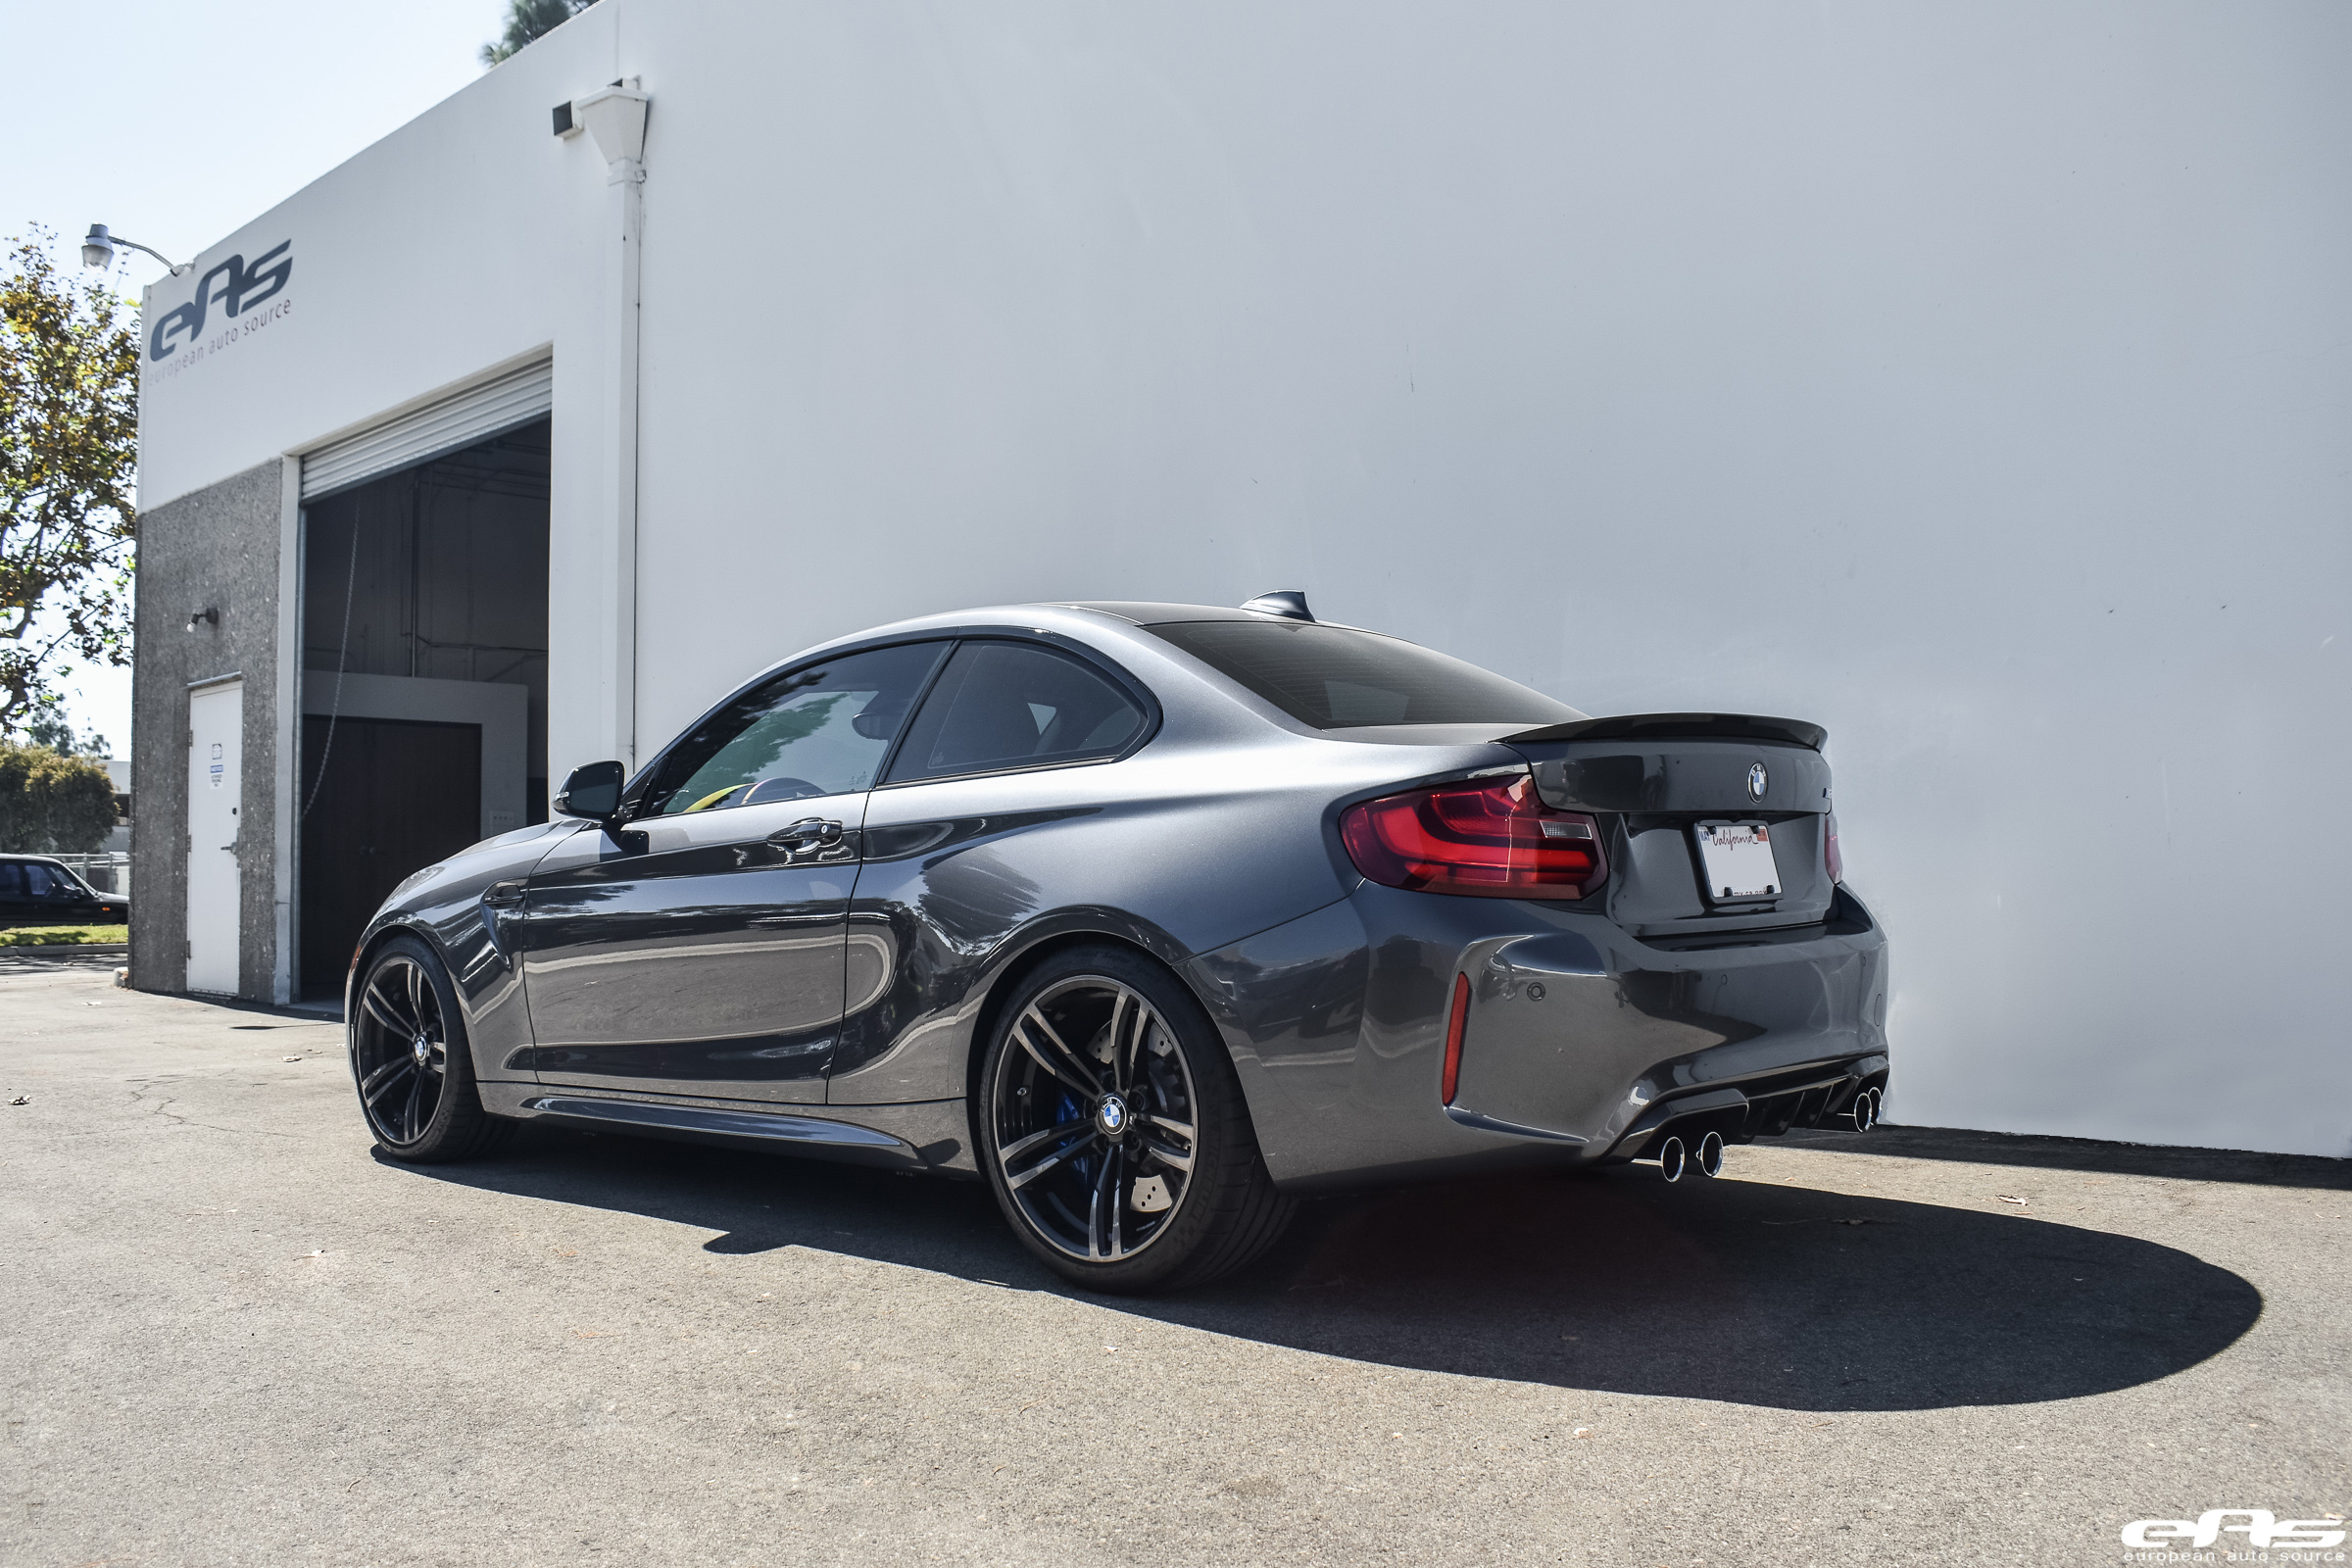 Mineral Gray Bmw M2 Gets M Performance Parts And Coilovers